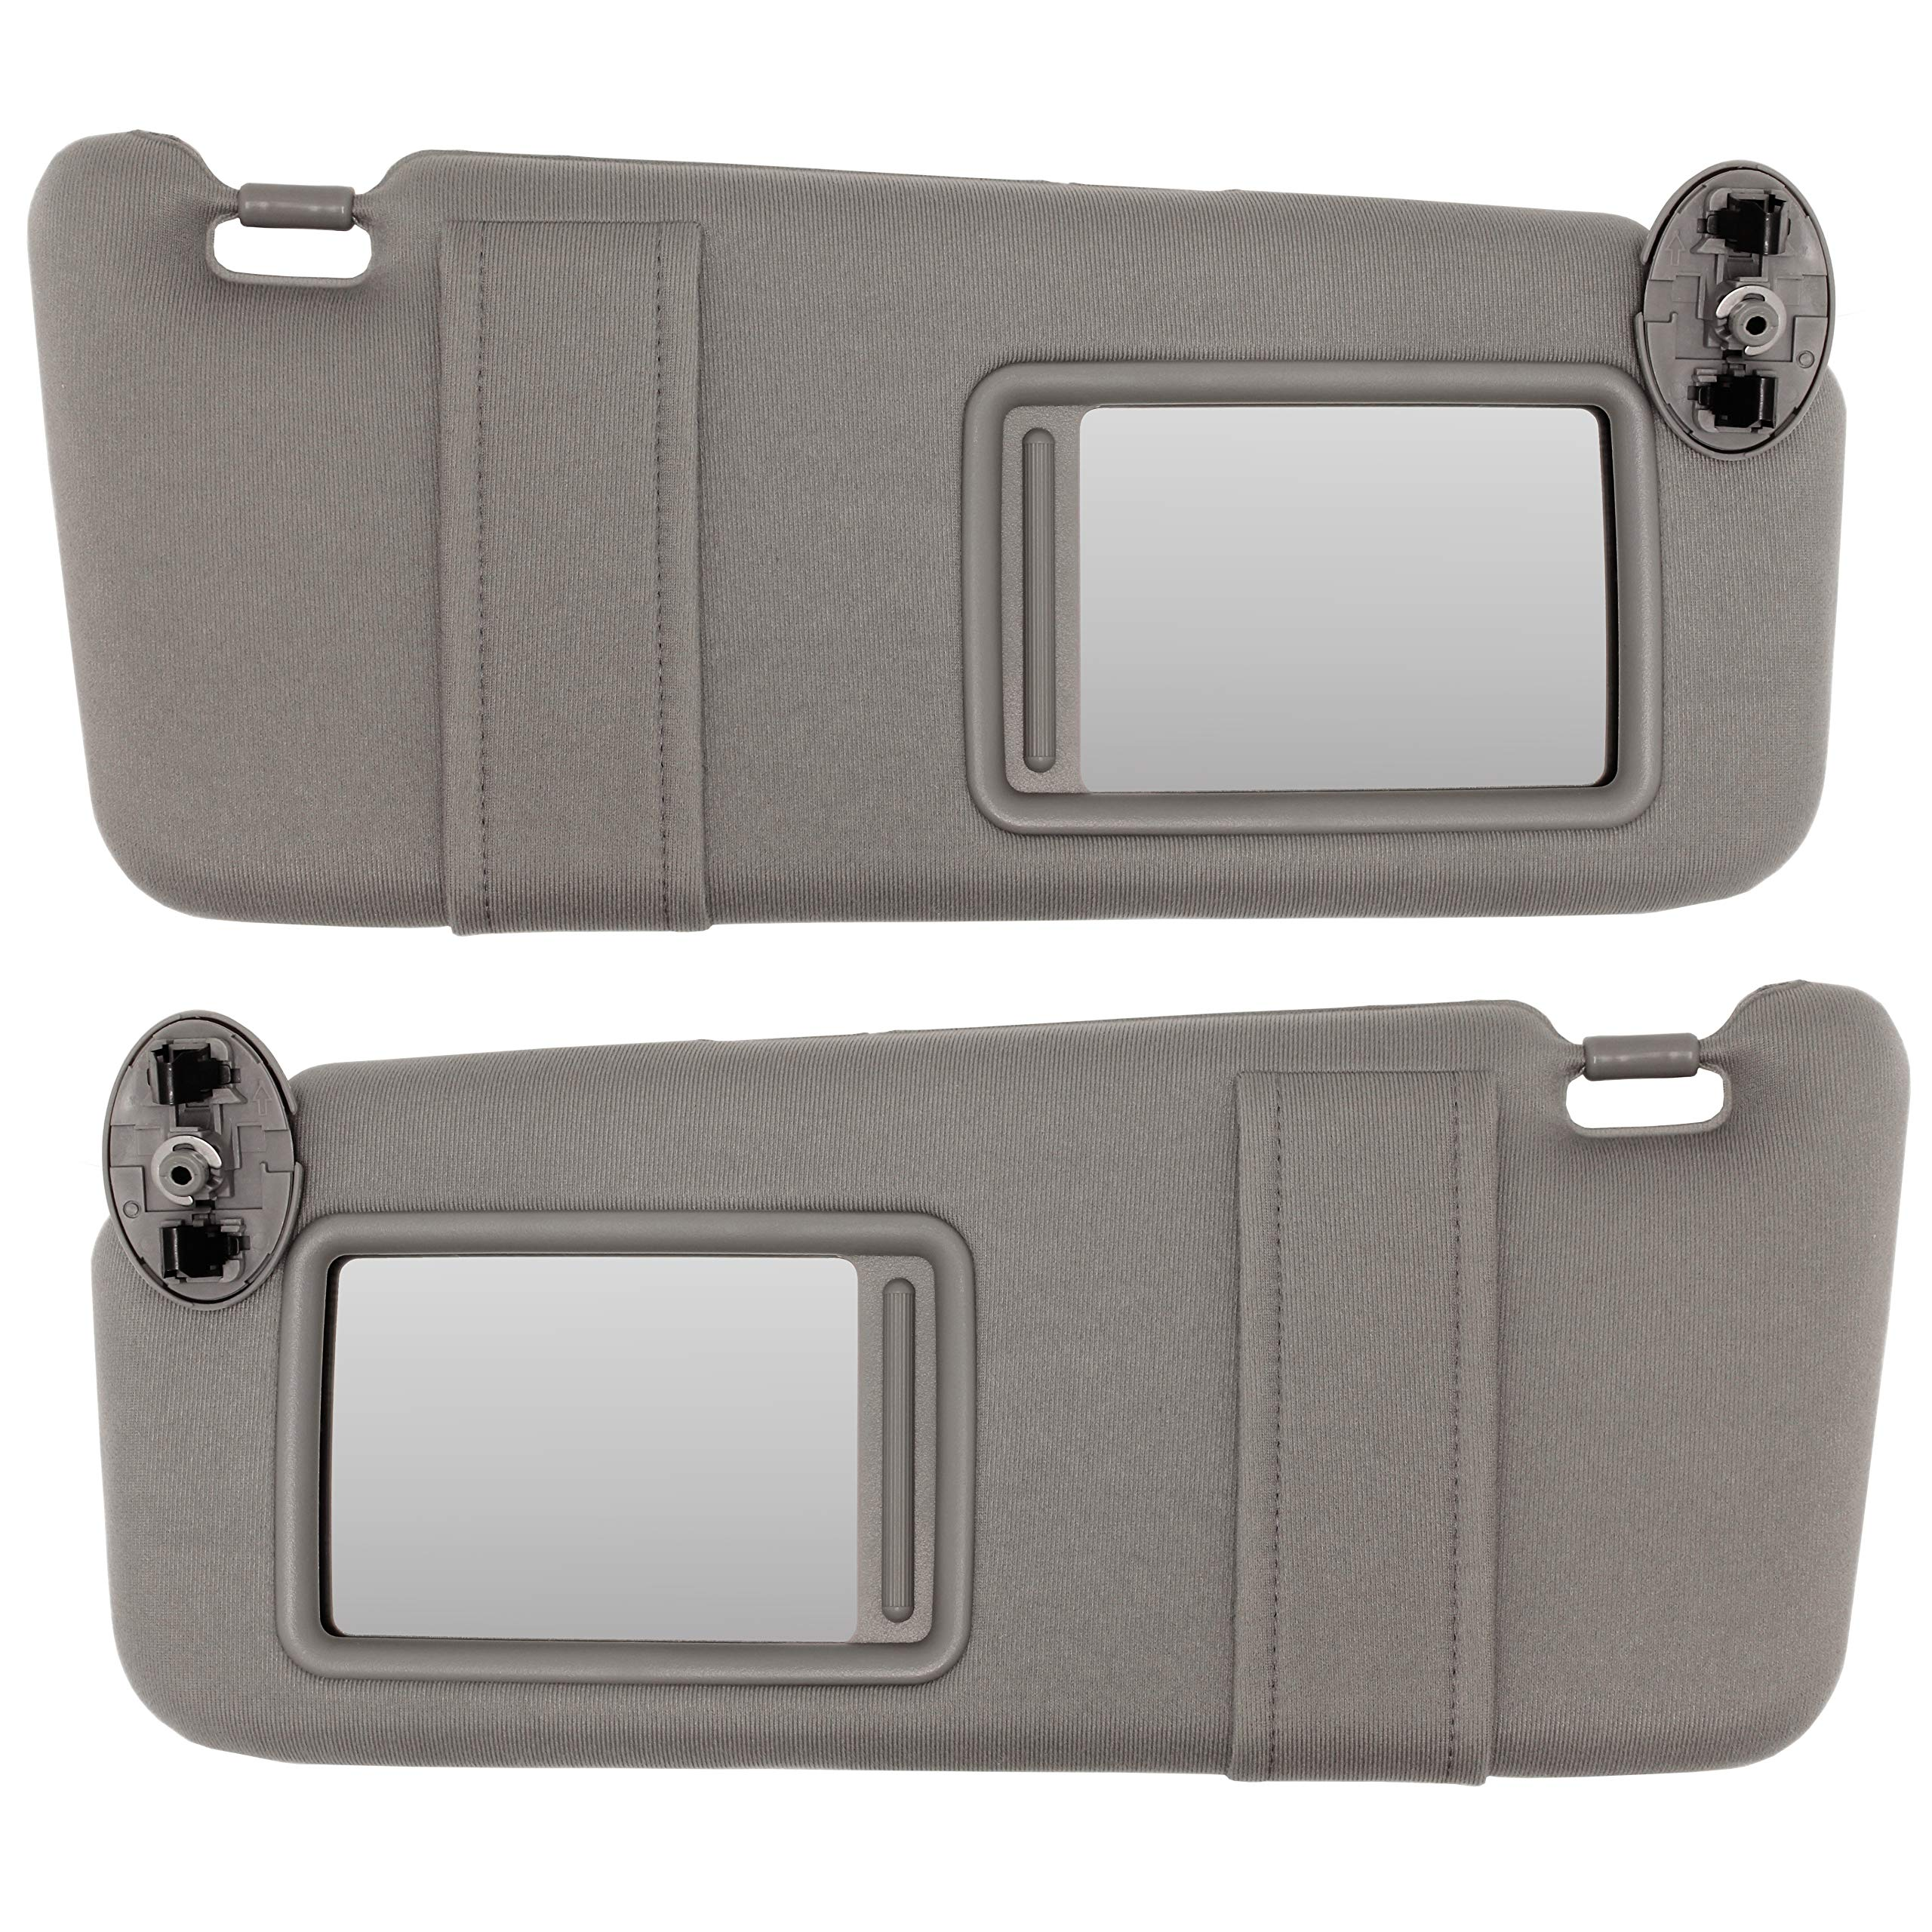 IAMAUTO 22825 New Gray Sun Visor Pair Left & Right for 2007-2011 Toyota Camry Without Sunroof or Vanity Light (Set of Driver and Passenger Side Visors)